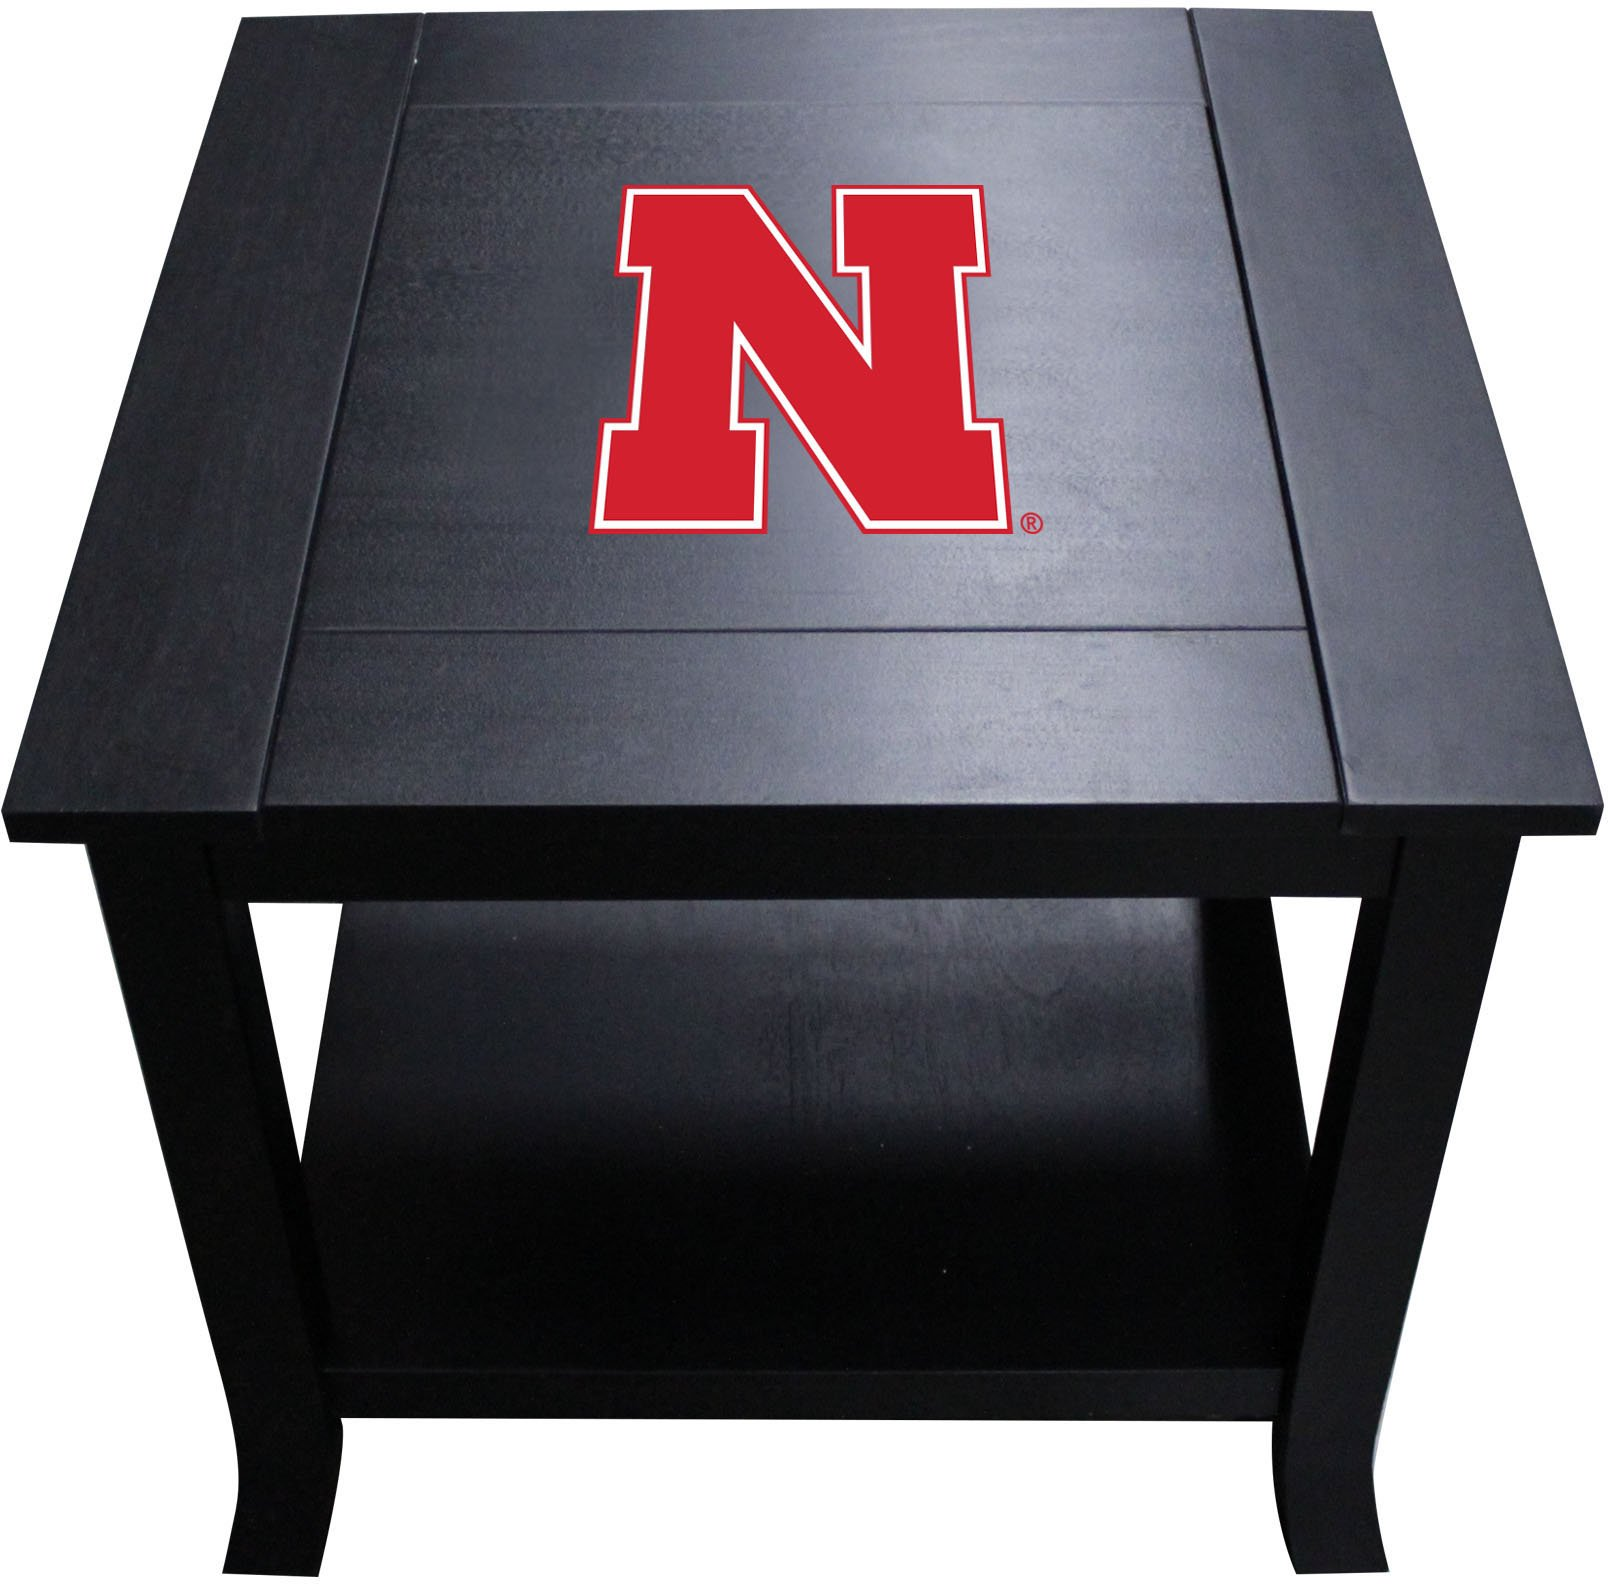 Imperial Officially Licensed NCAA Furniture: Hardwood Side/End Table, Nebraska Cornhuskers by Imperial